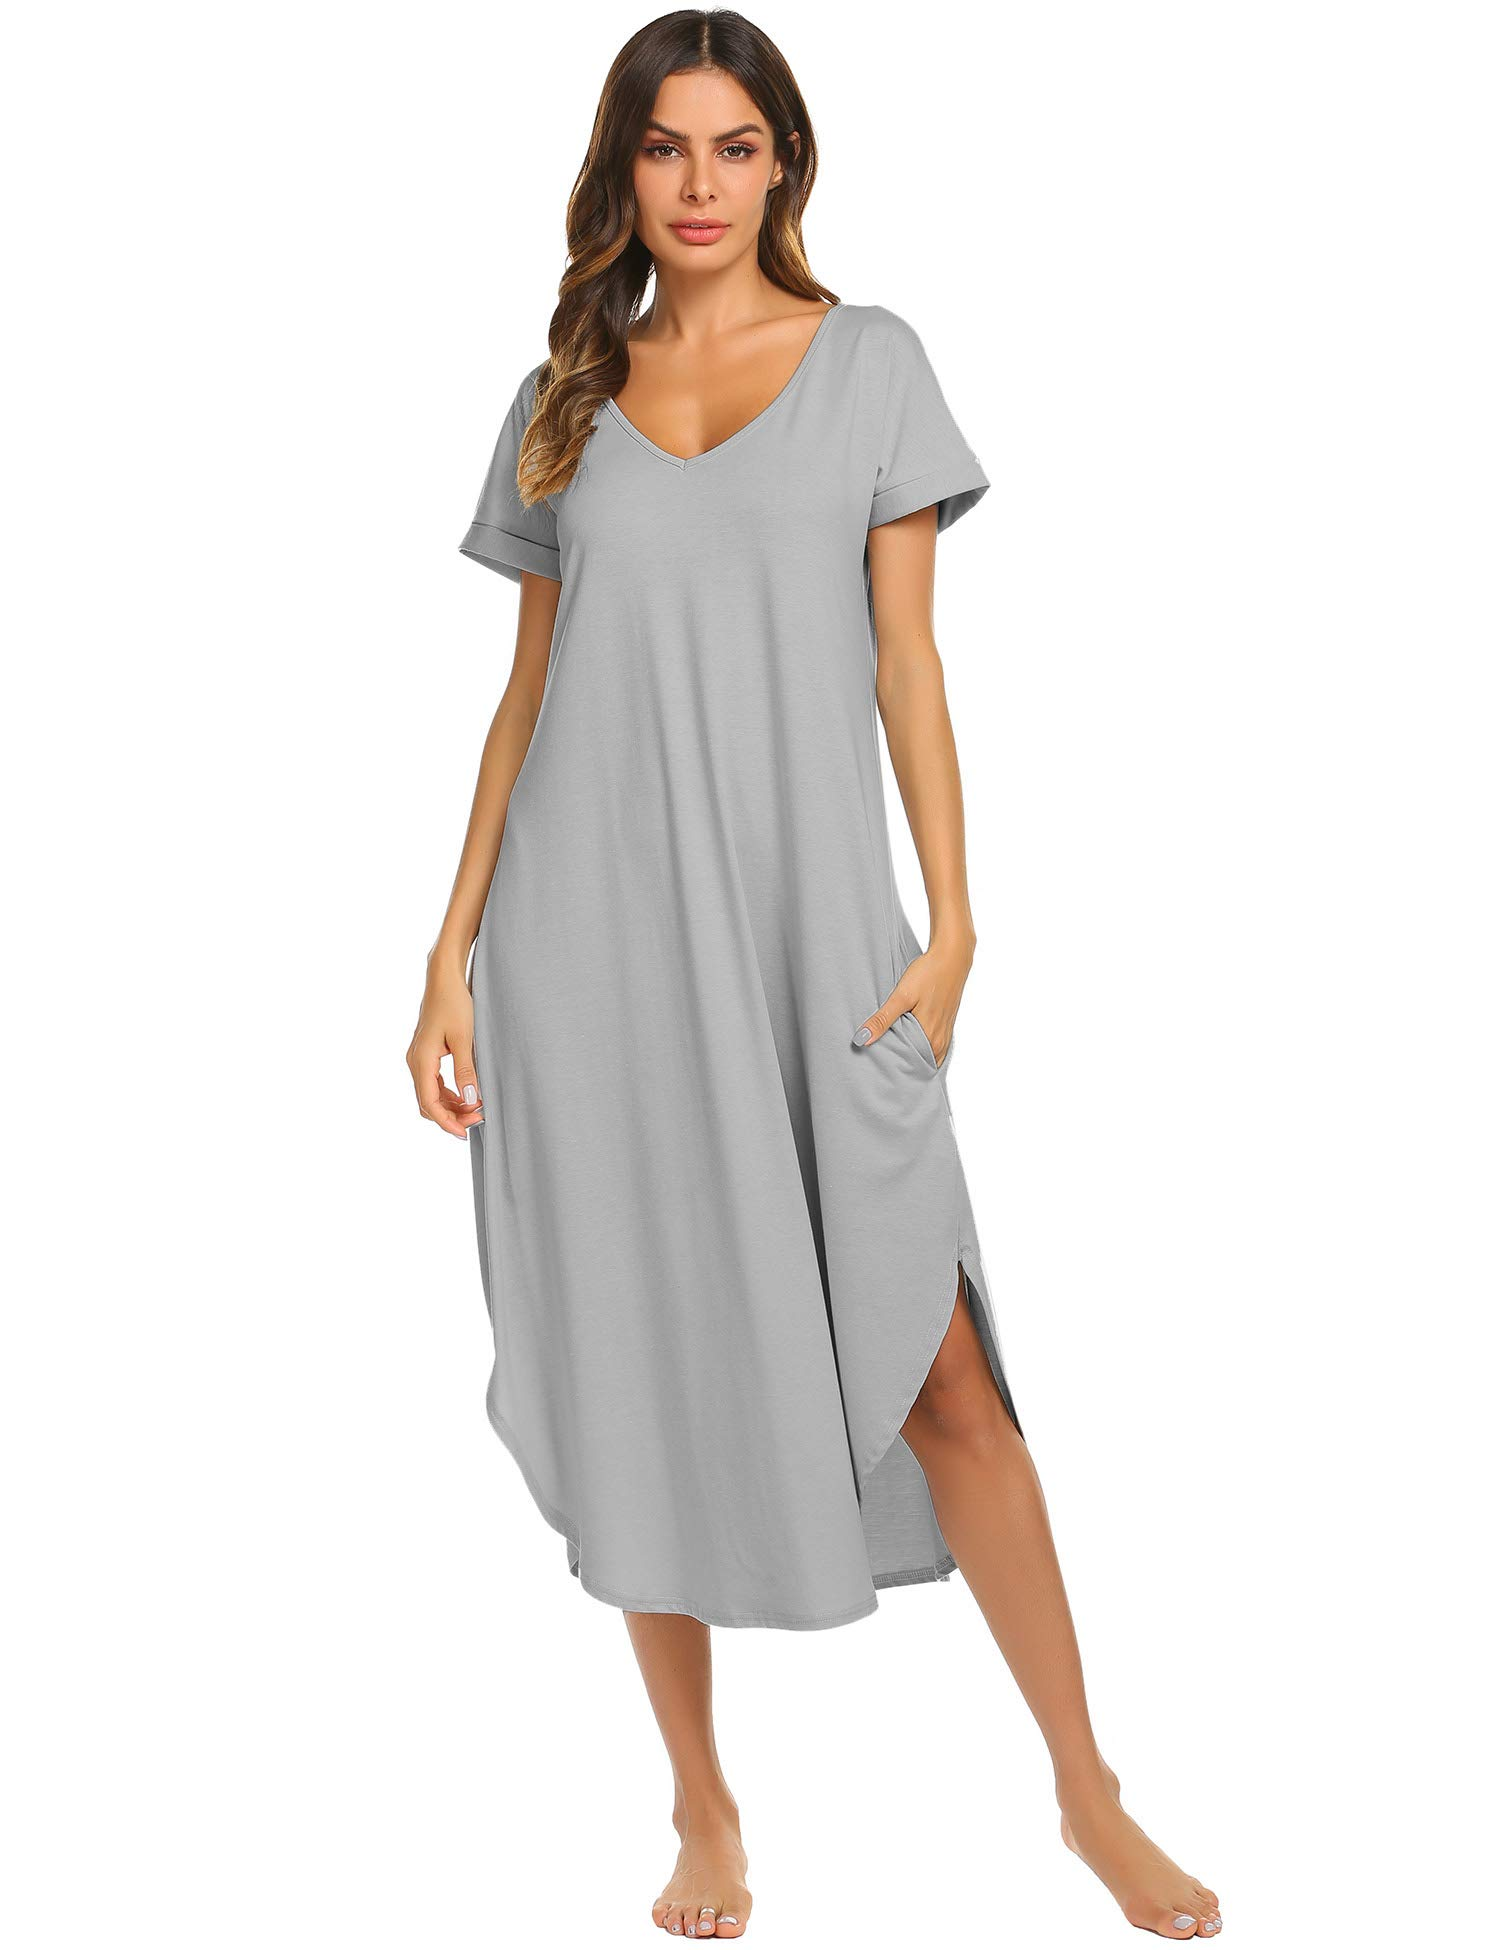 Ekouaer Nightgowns Womens V Neck Loungewear Short Sleeve Sleepwear Plus Size Night Wear S-XXL